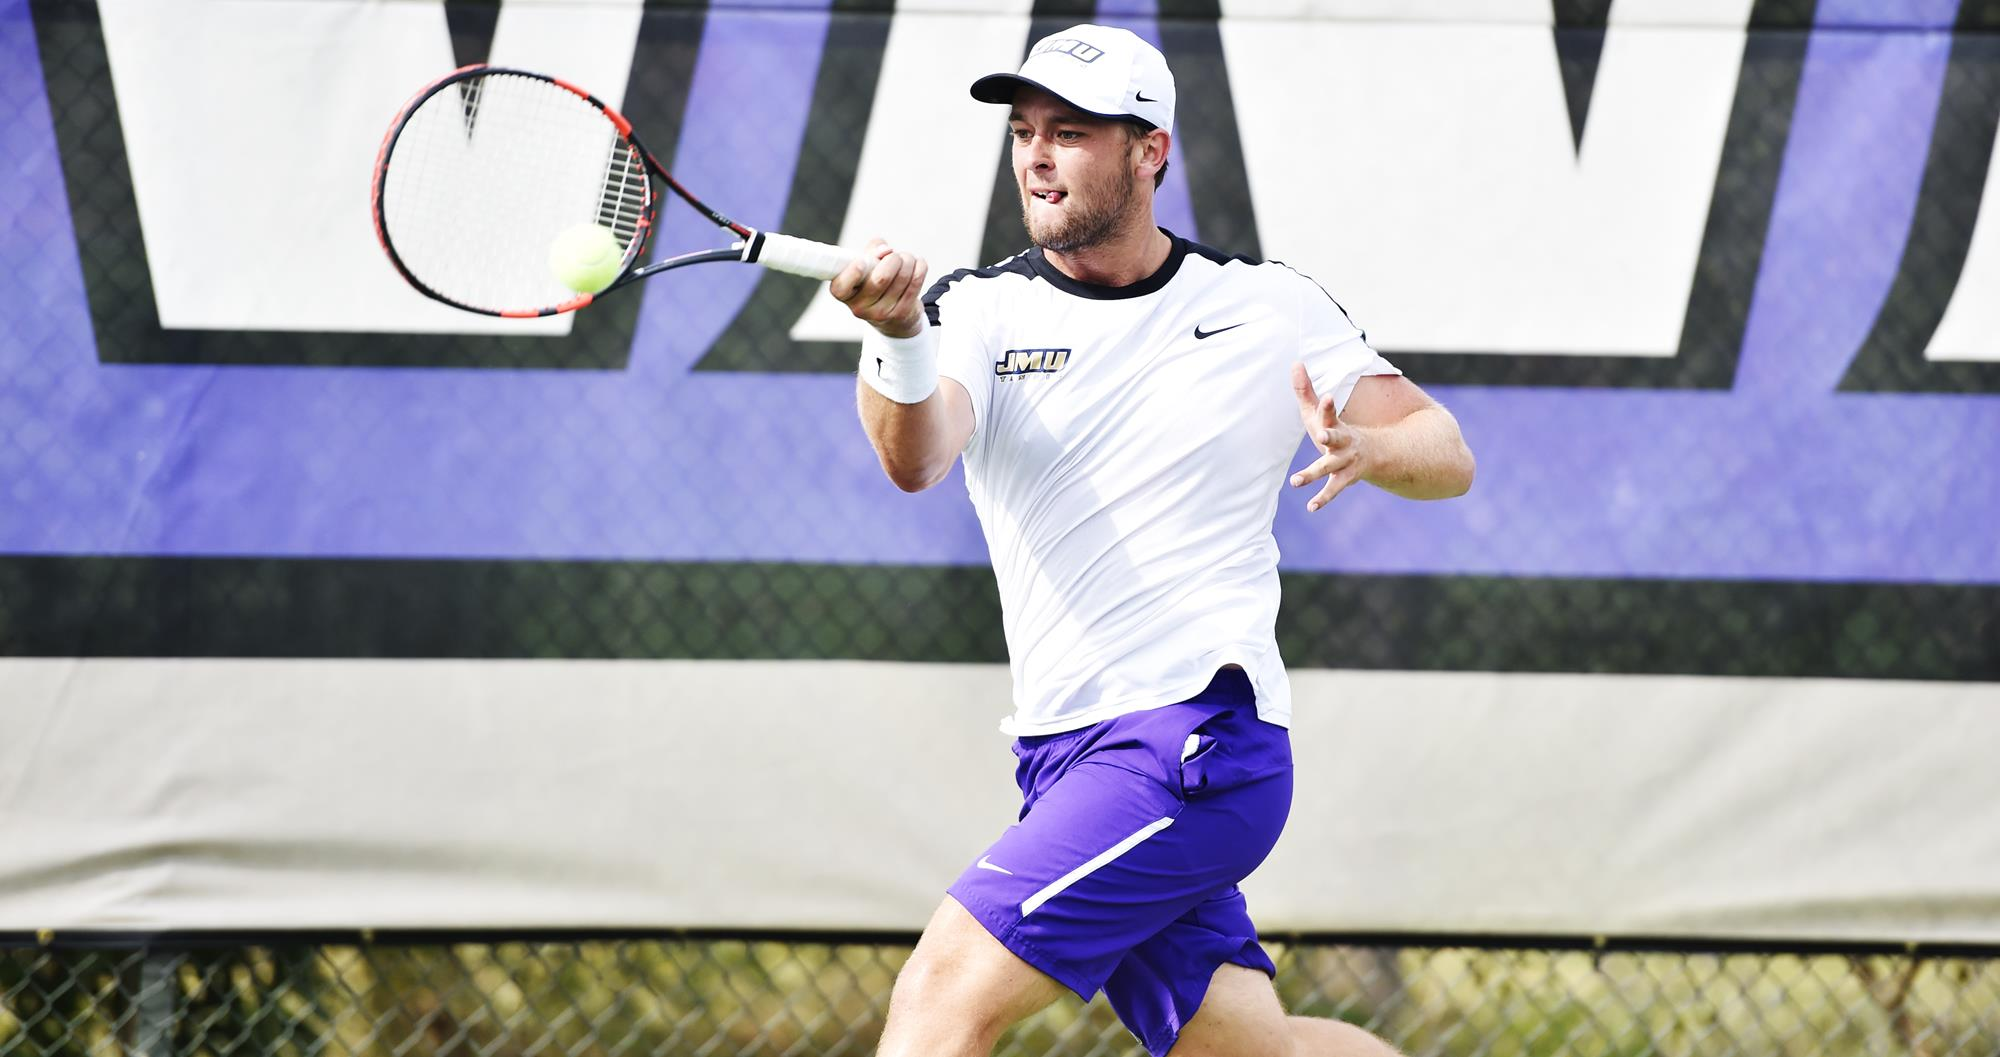 Men's Tennis: JMU Opens Spring Duals with 1-1 Split at VCU 4+1 Event